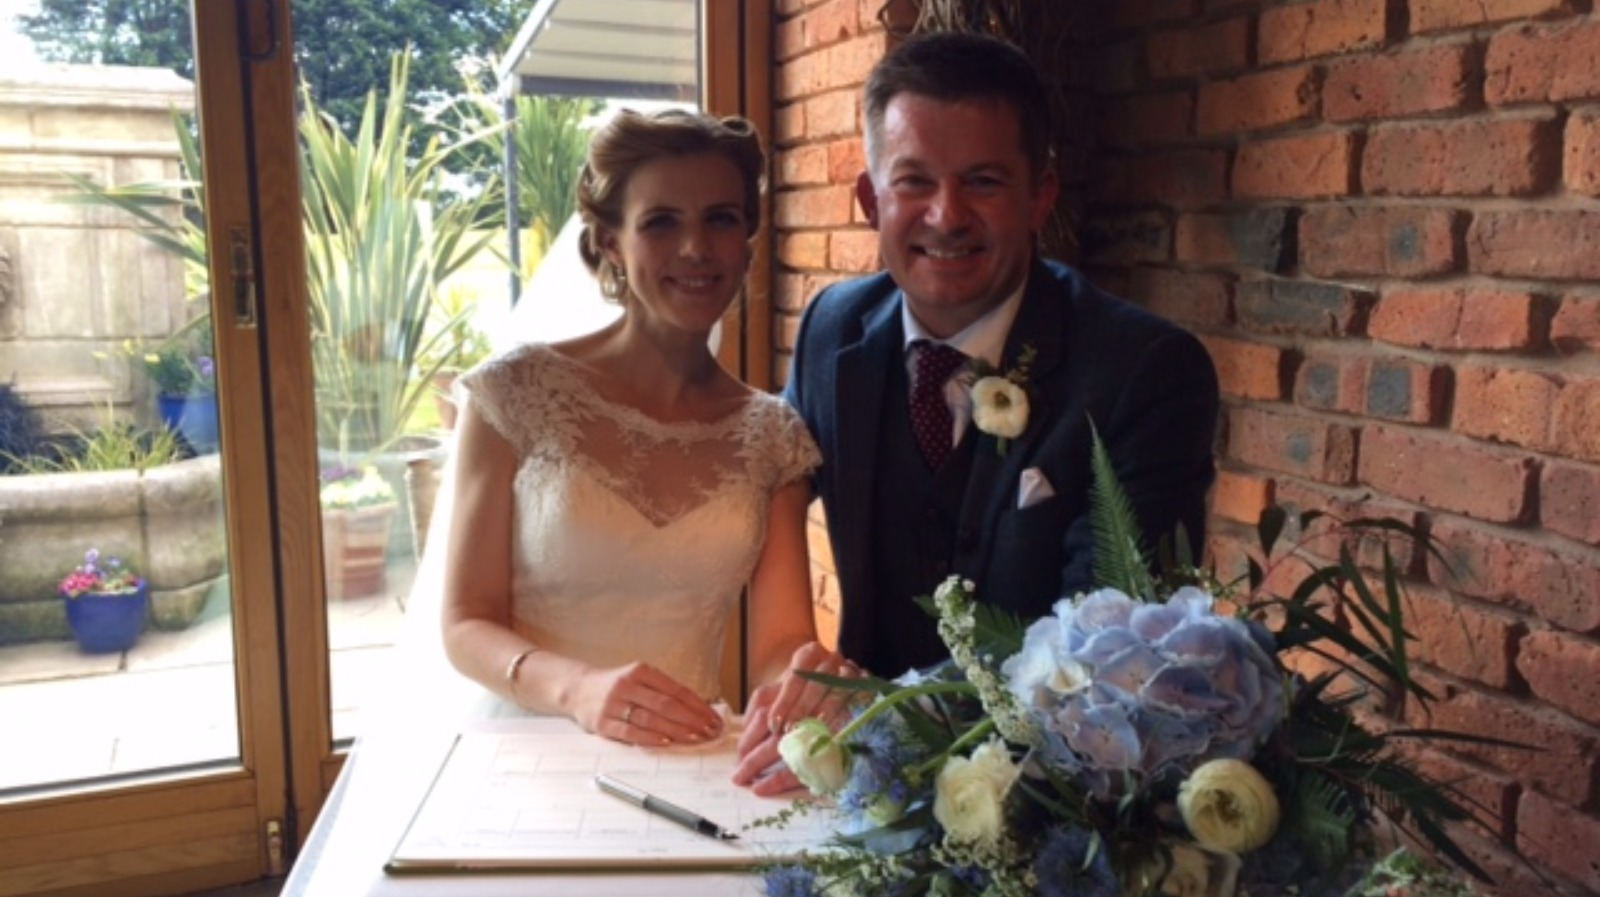 congratulations to mr and mrs payne